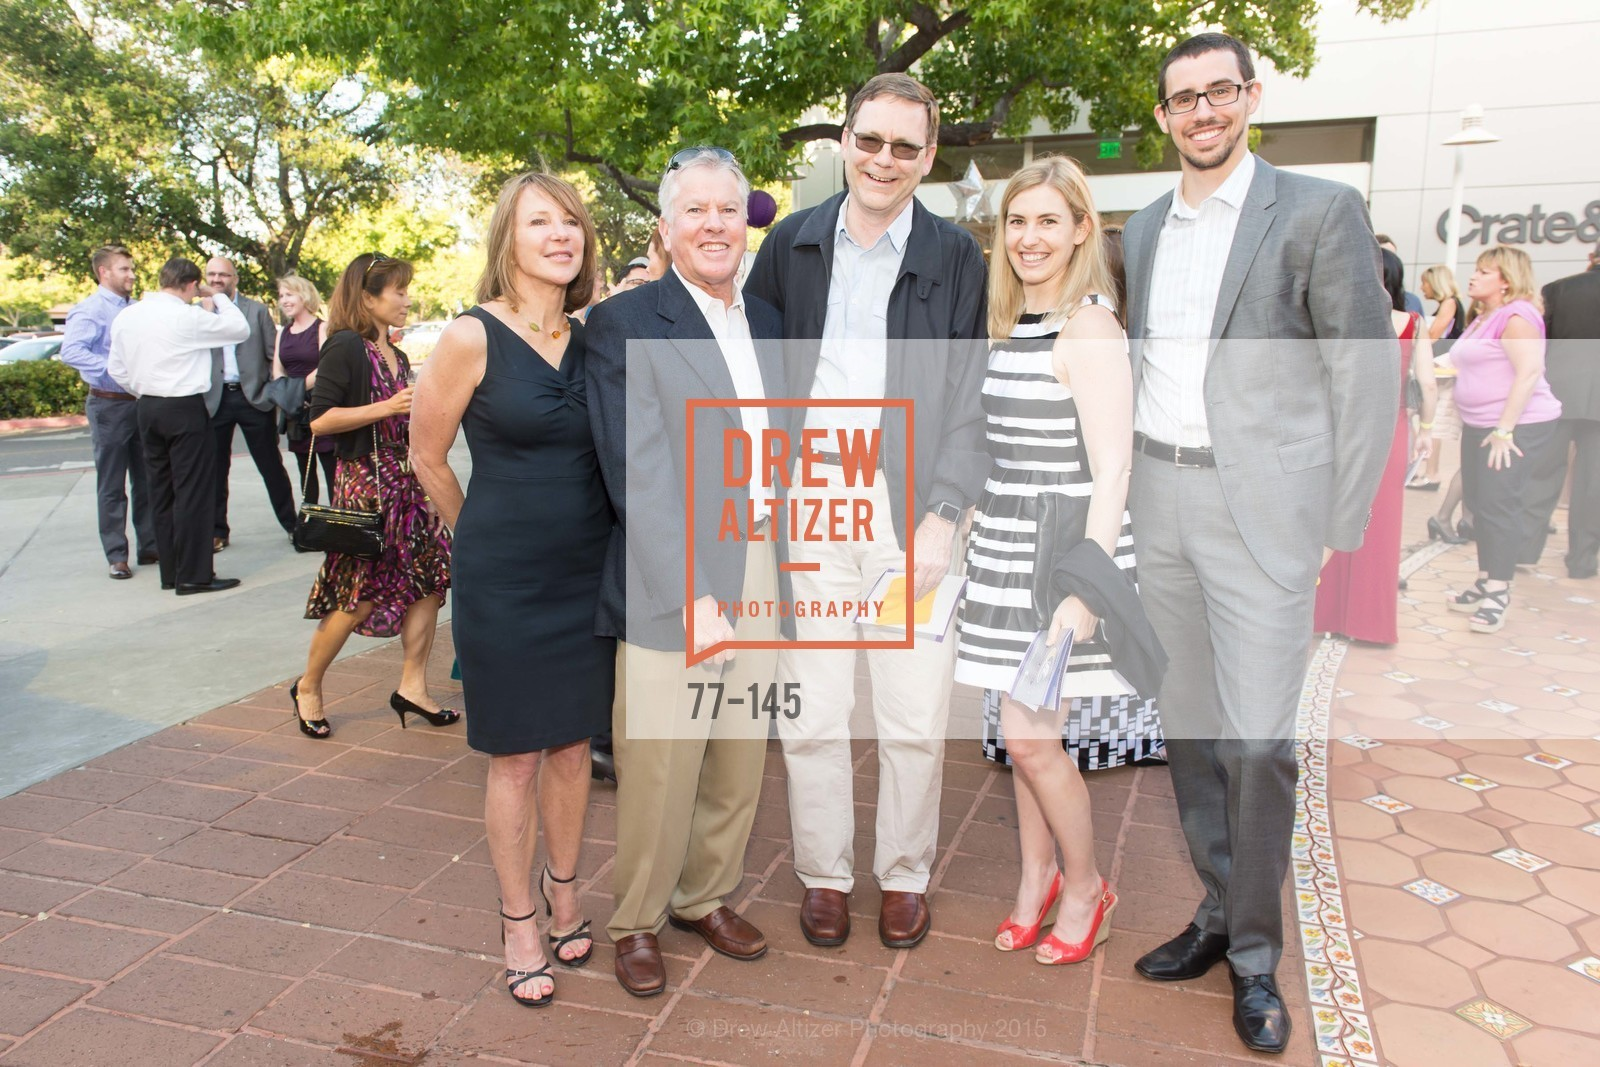 Patricia O'Brien, Dan O'Brien, Townsend, DREAMS HAPPEN: Playhouse Auction and Gala, Stanford Shopping Center, June 5th, 2015,Drew Altizer, Drew Altizer Photography, full-service agency, private events, San Francisco photographer, photographer california